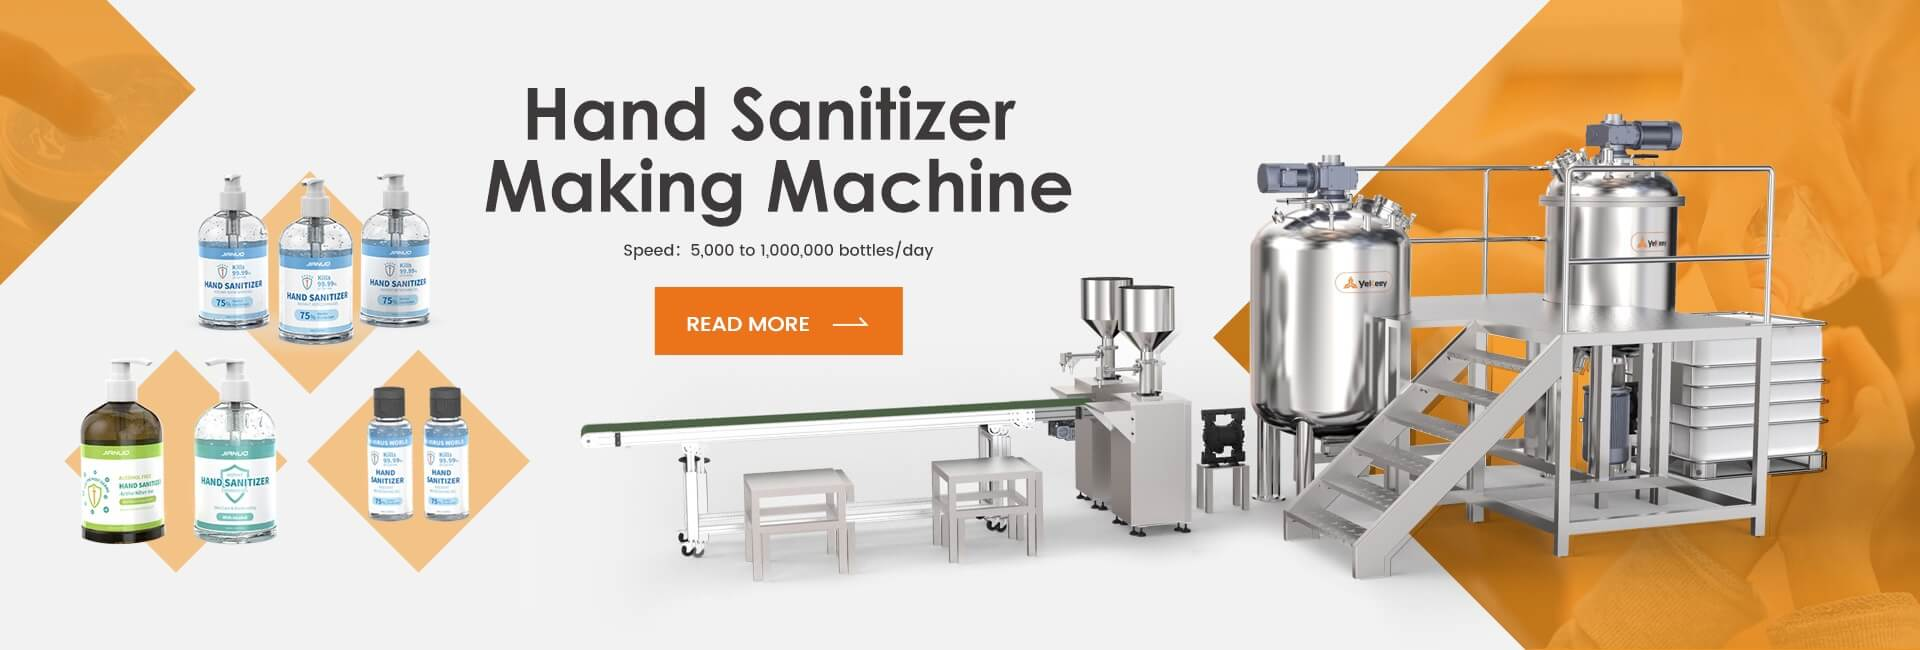 hand-sanitizer making machine